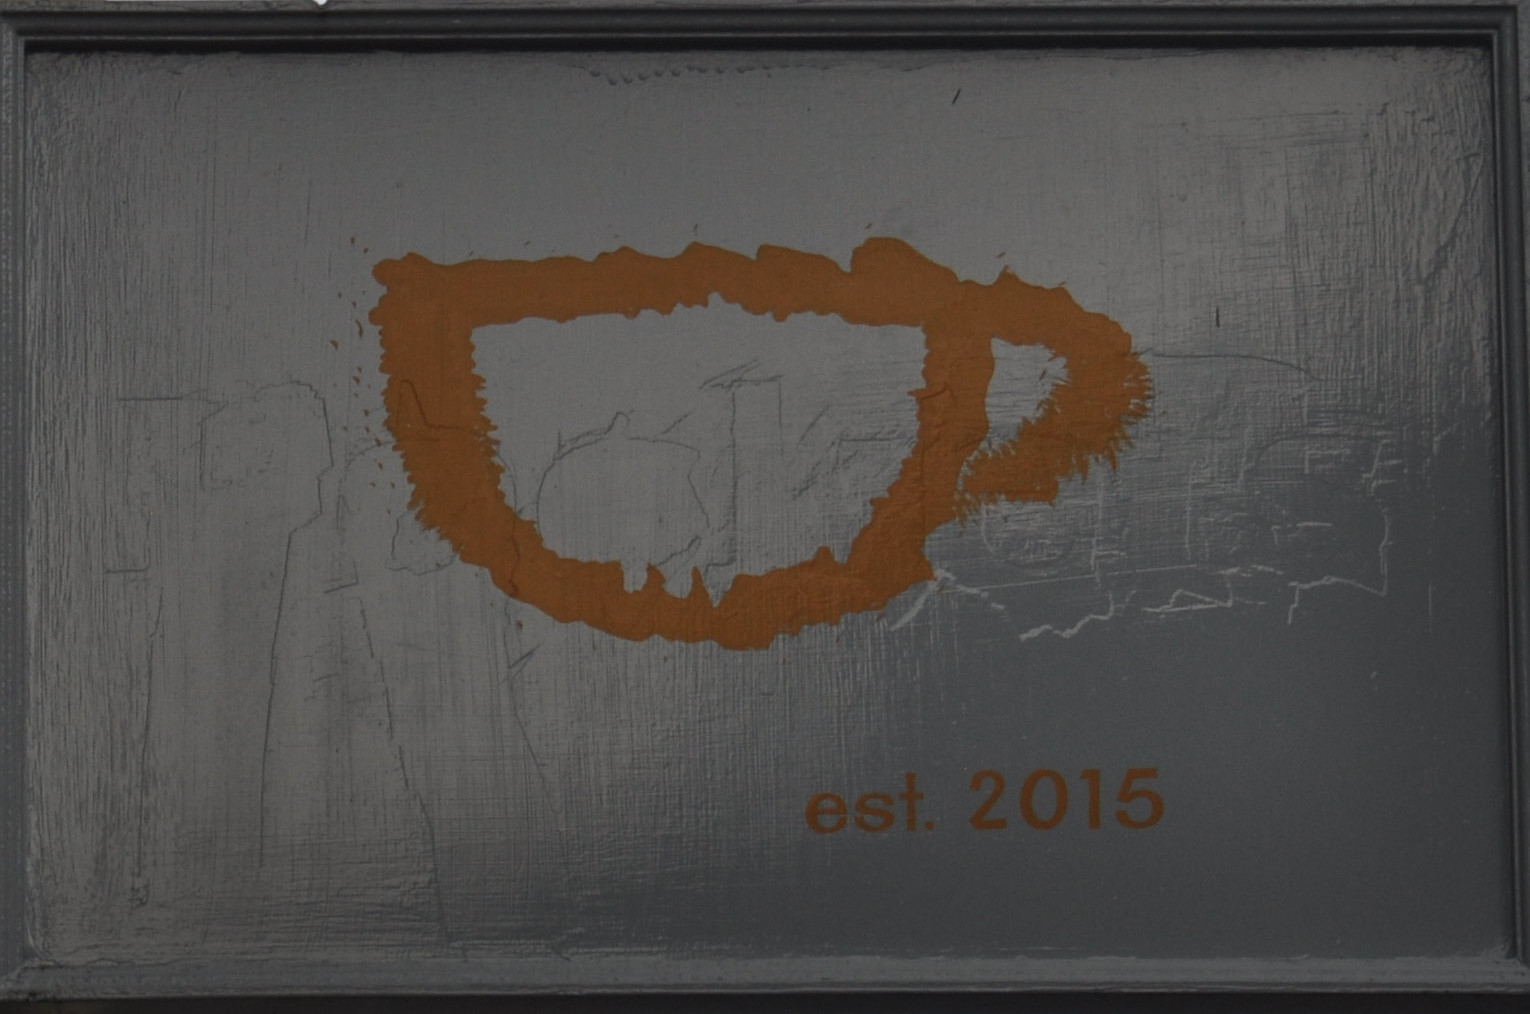 """A stylised outline of a cup in orange paint, with the words """"est. 2015"""" underneath."""